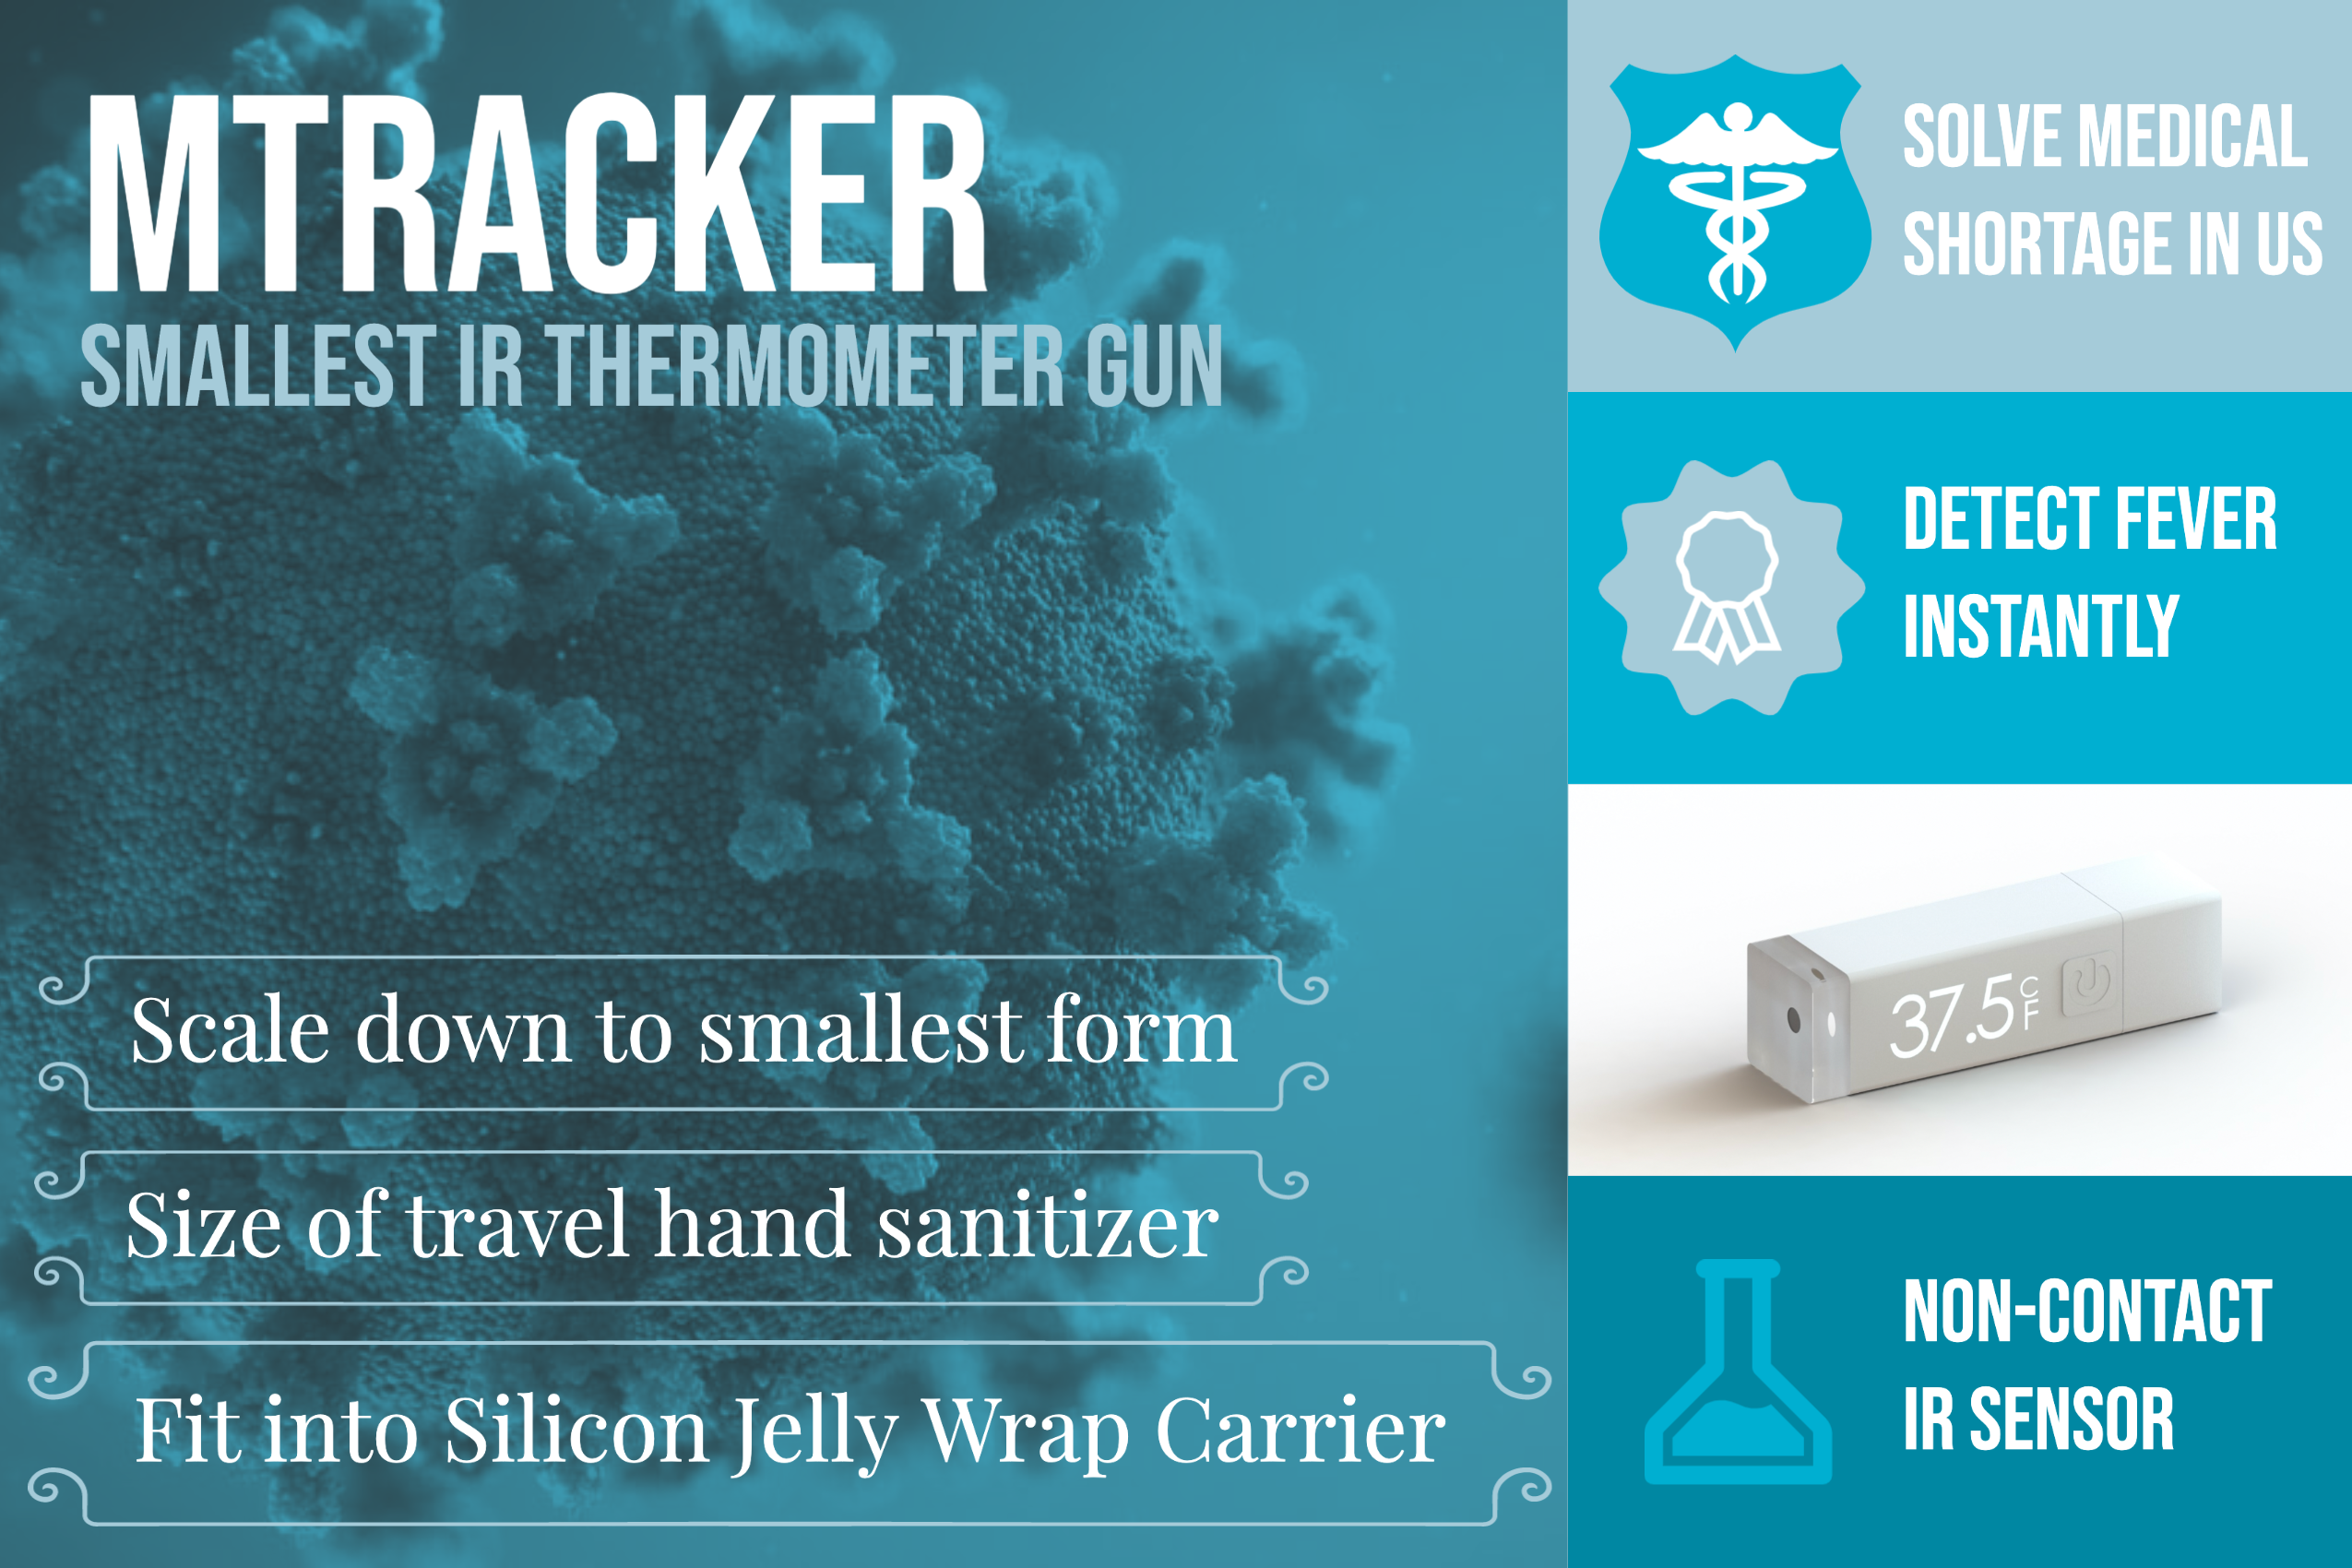 mTracker Smallest IR Thermometer For Fever Detection